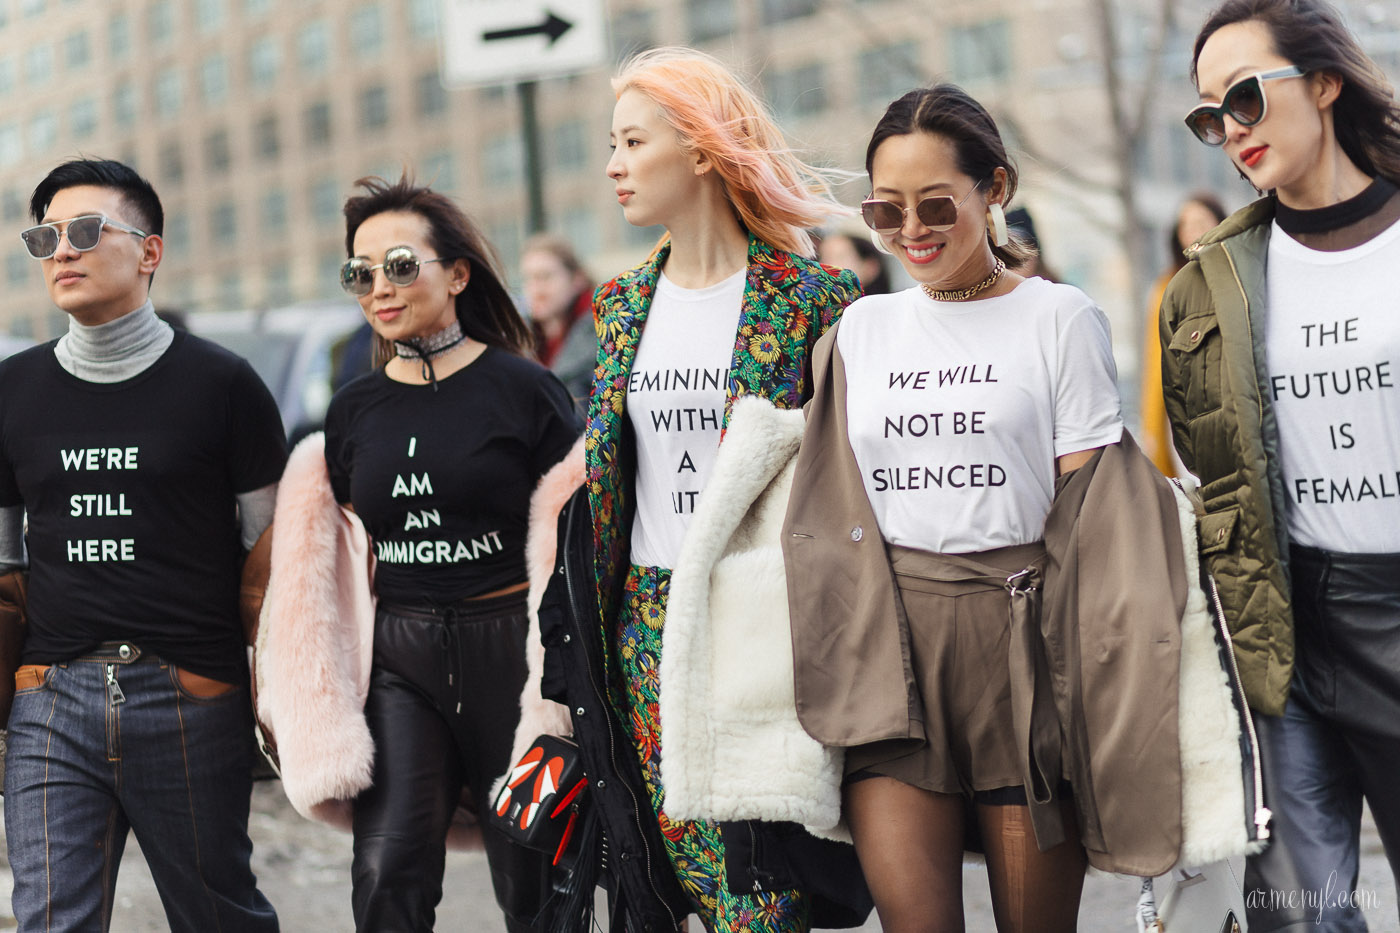 The Future is female T-shirts Women empowerment womens fashion in New York street style photography by Armenyl.com